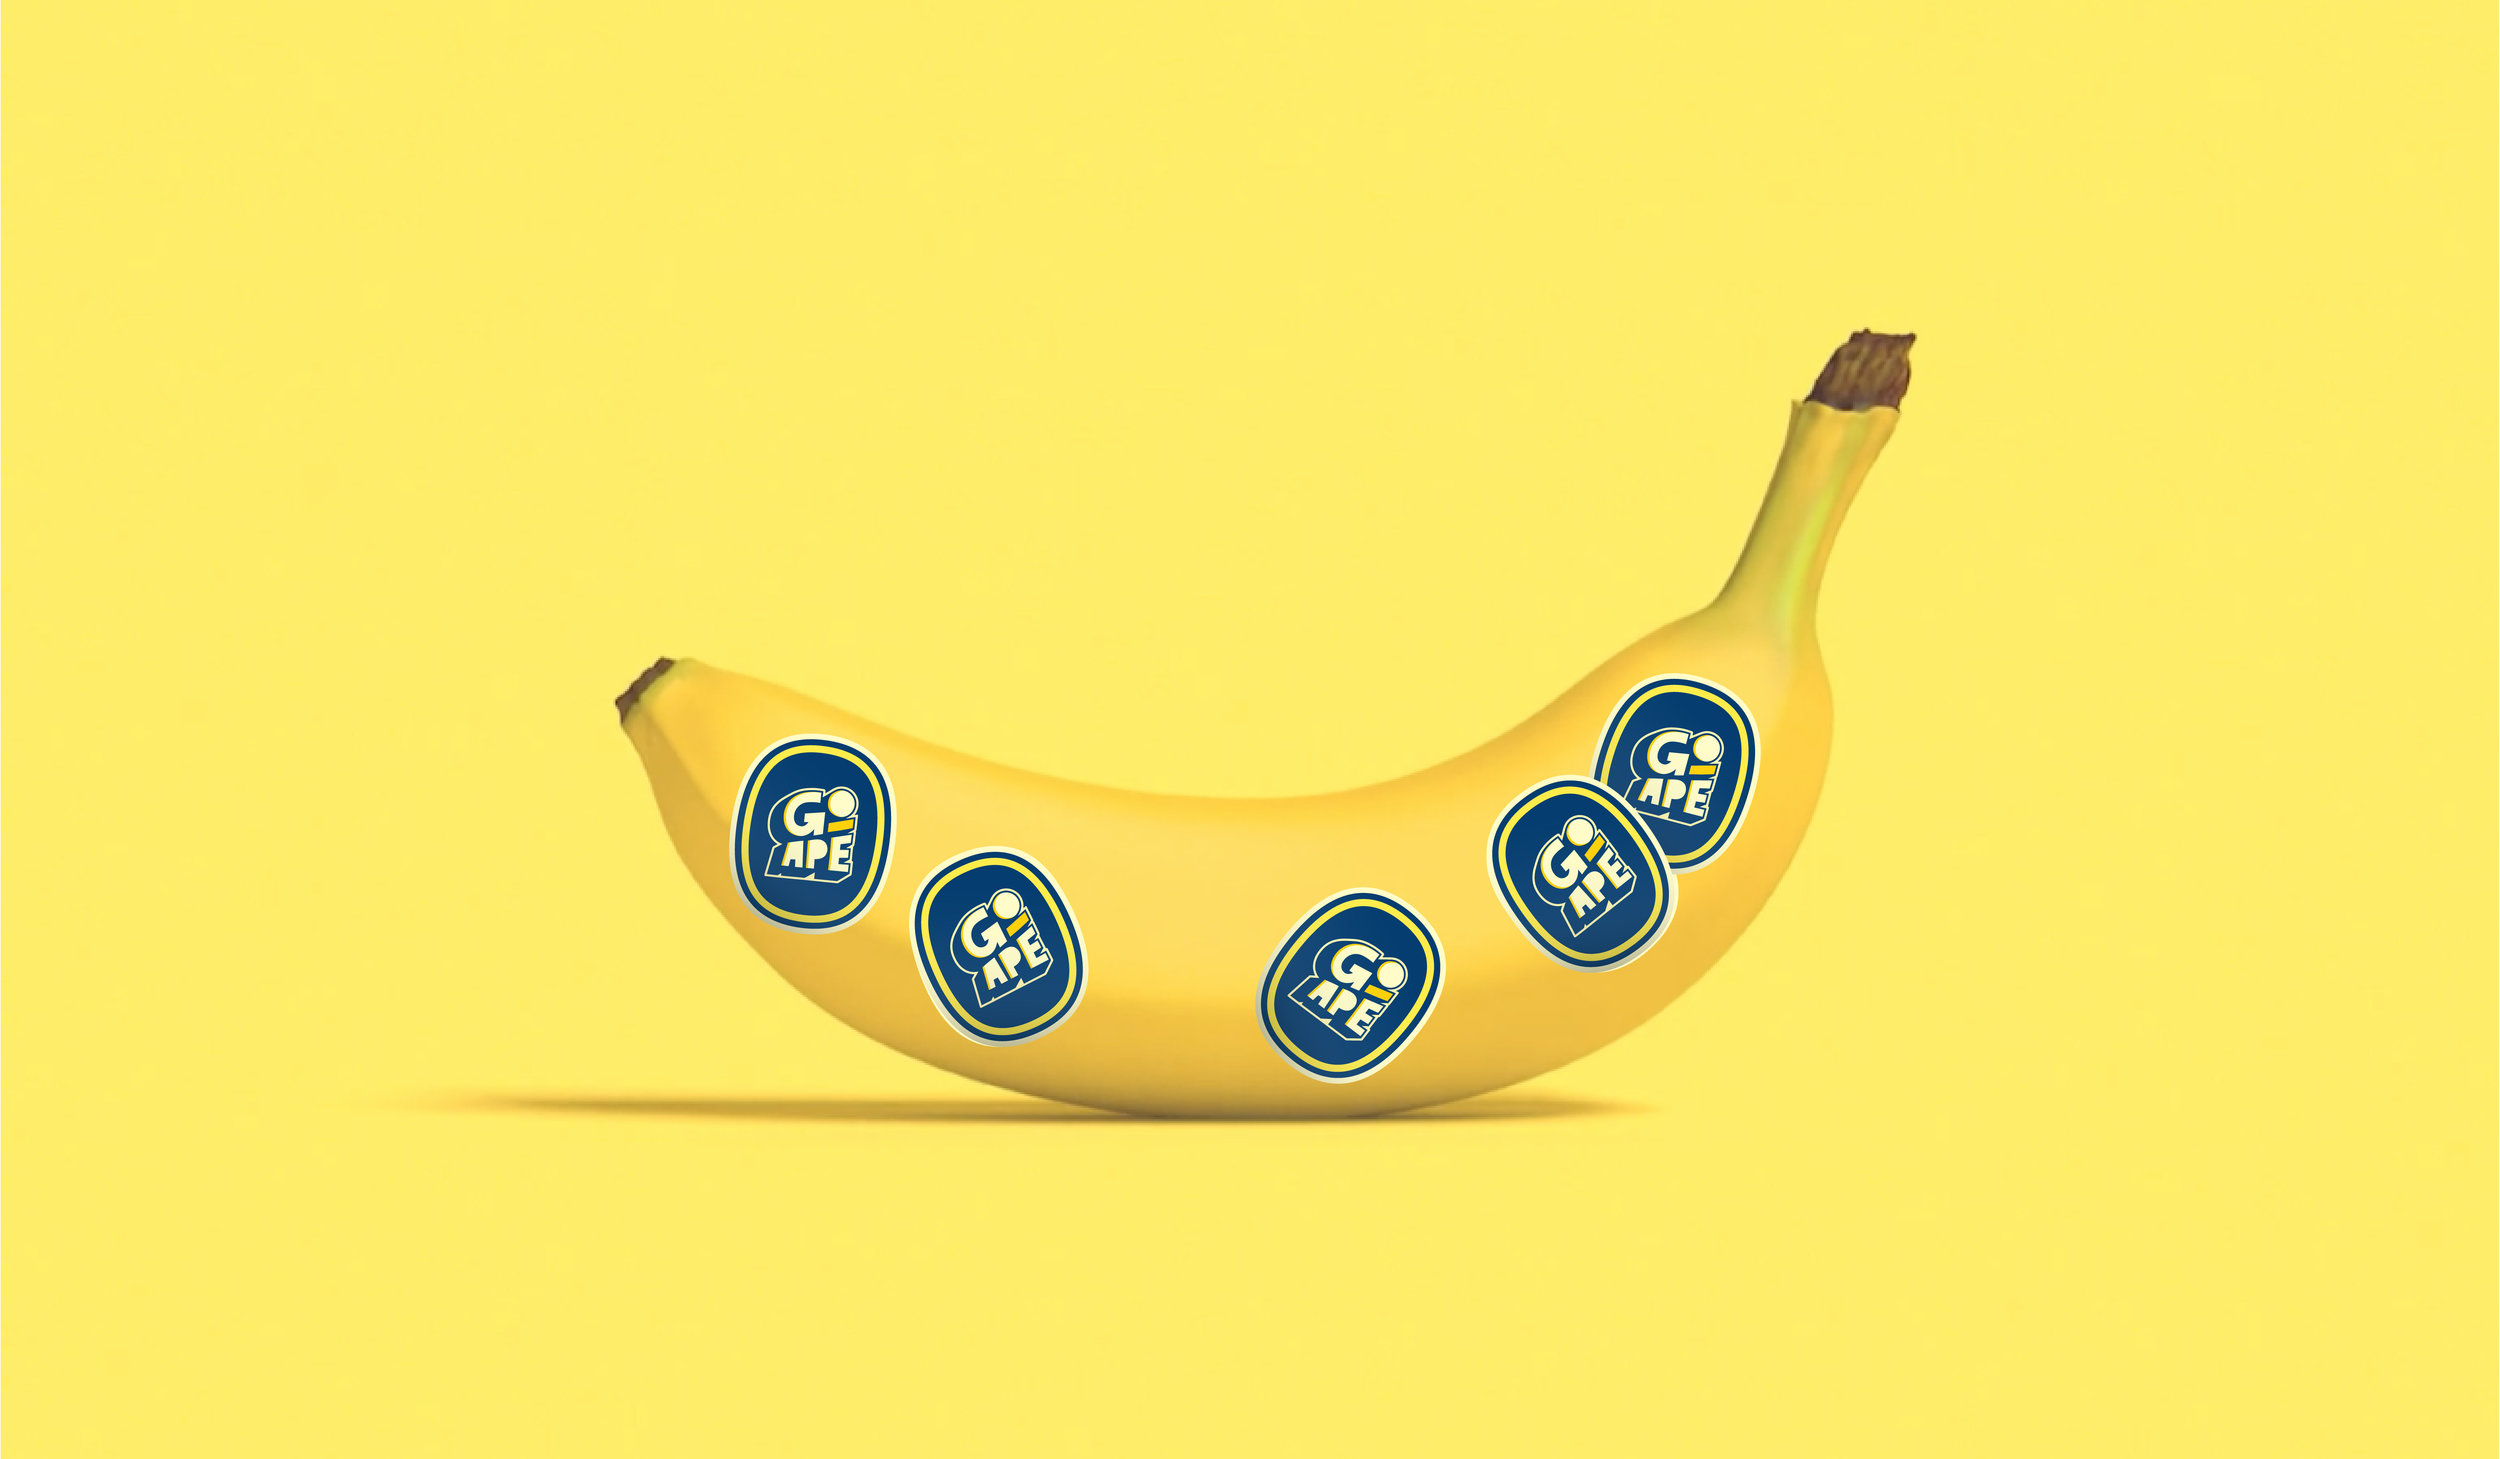 Banana Stickers.jpg